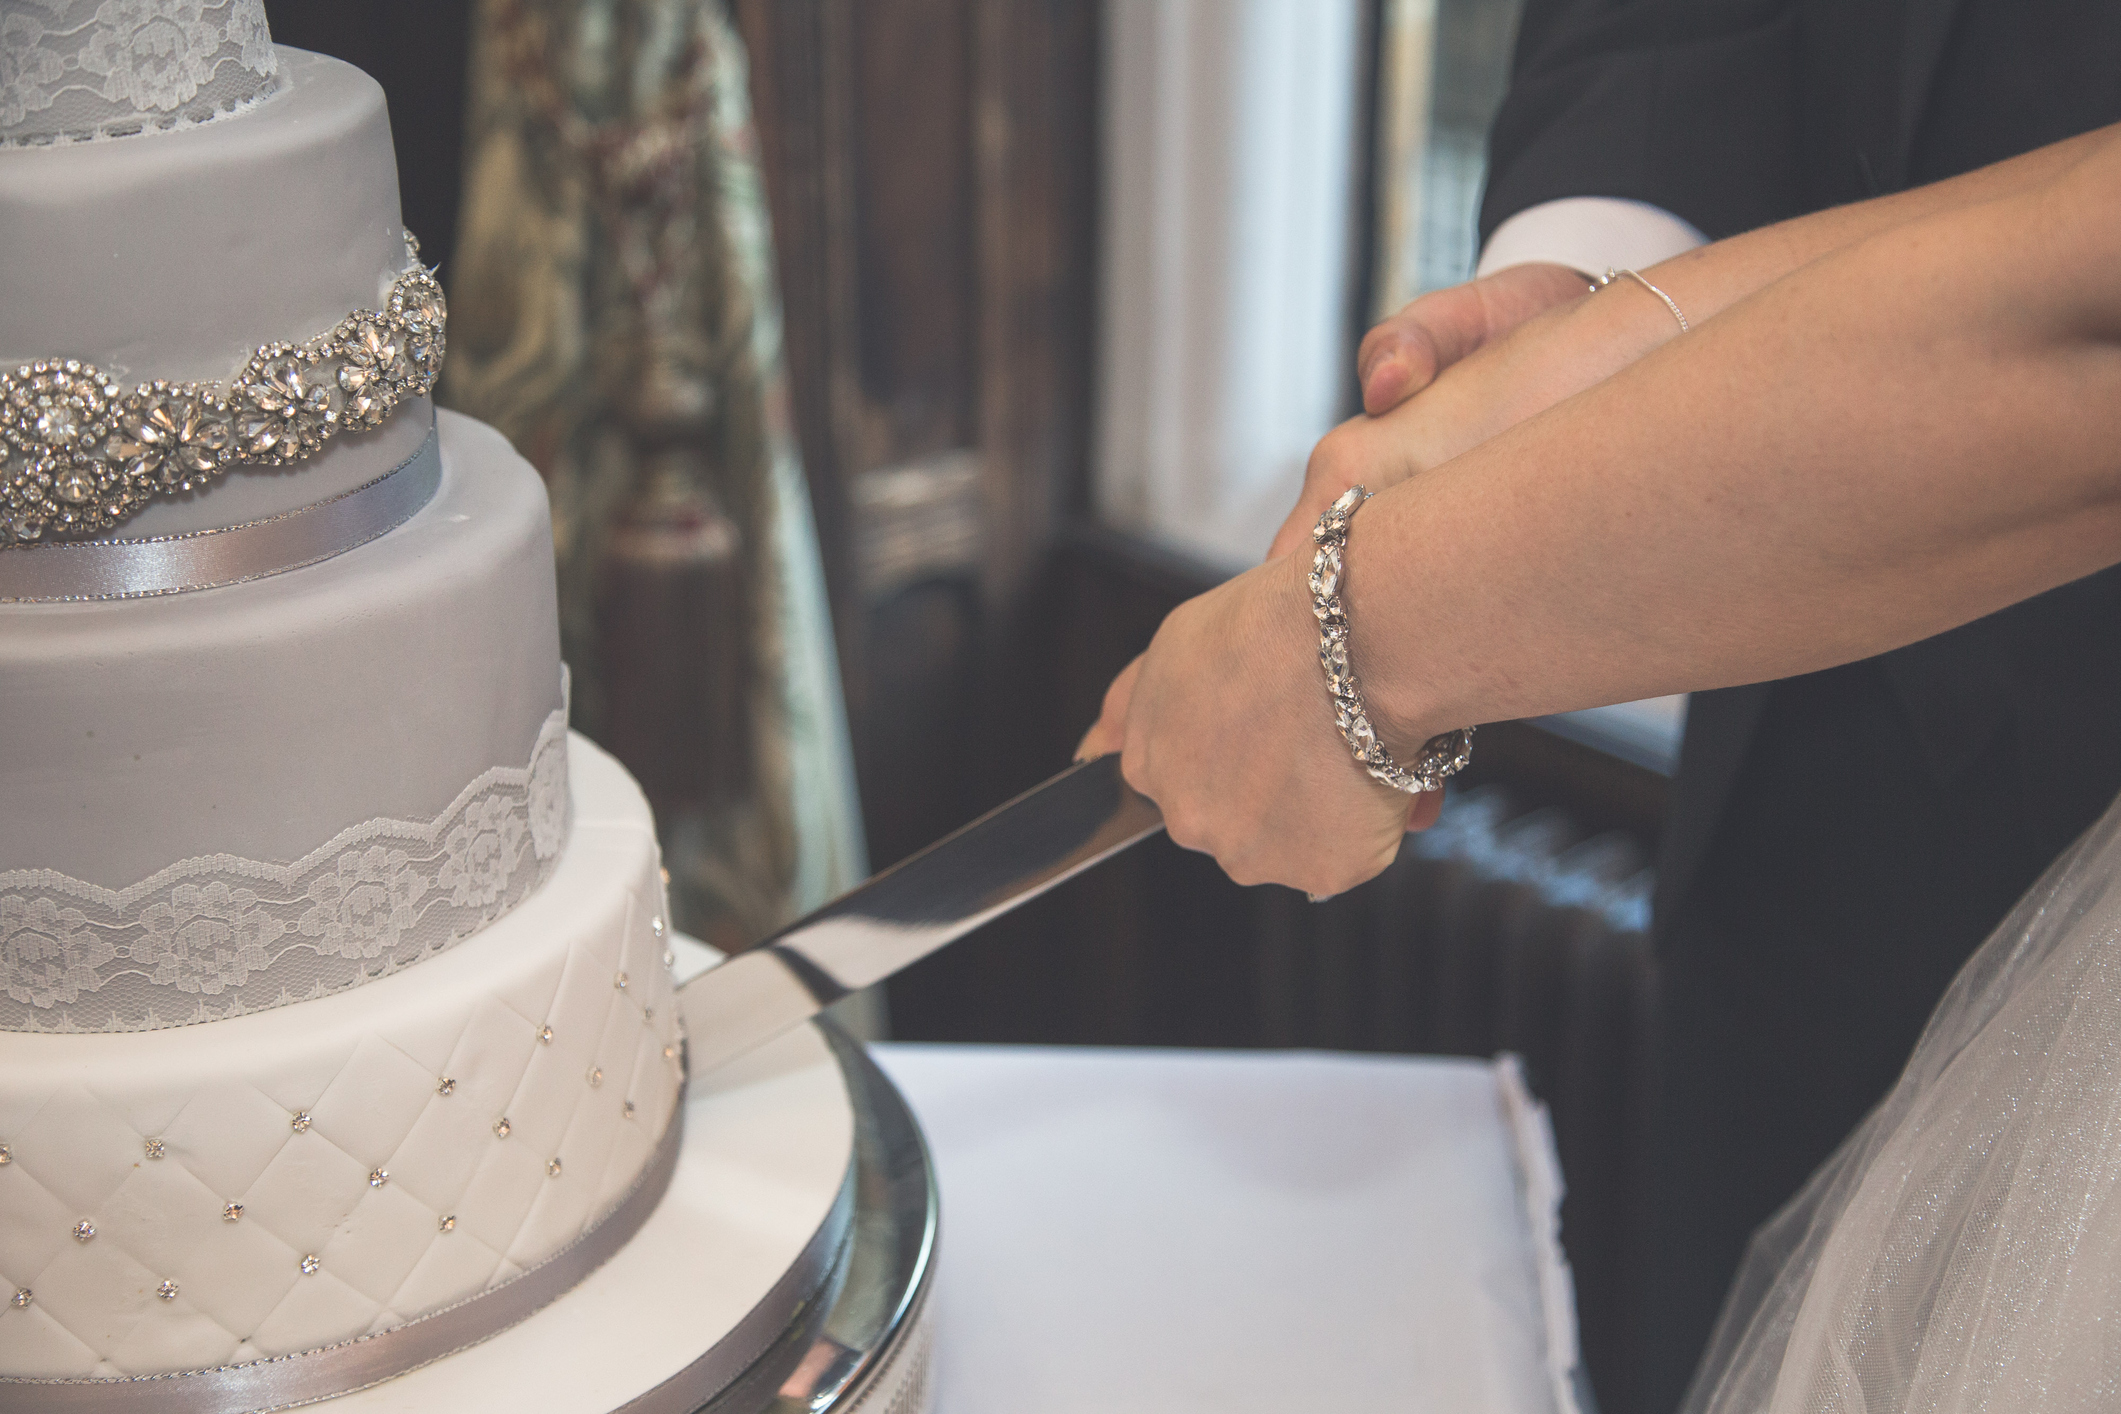 How To Cut A Wedding Cake Lovetoknow